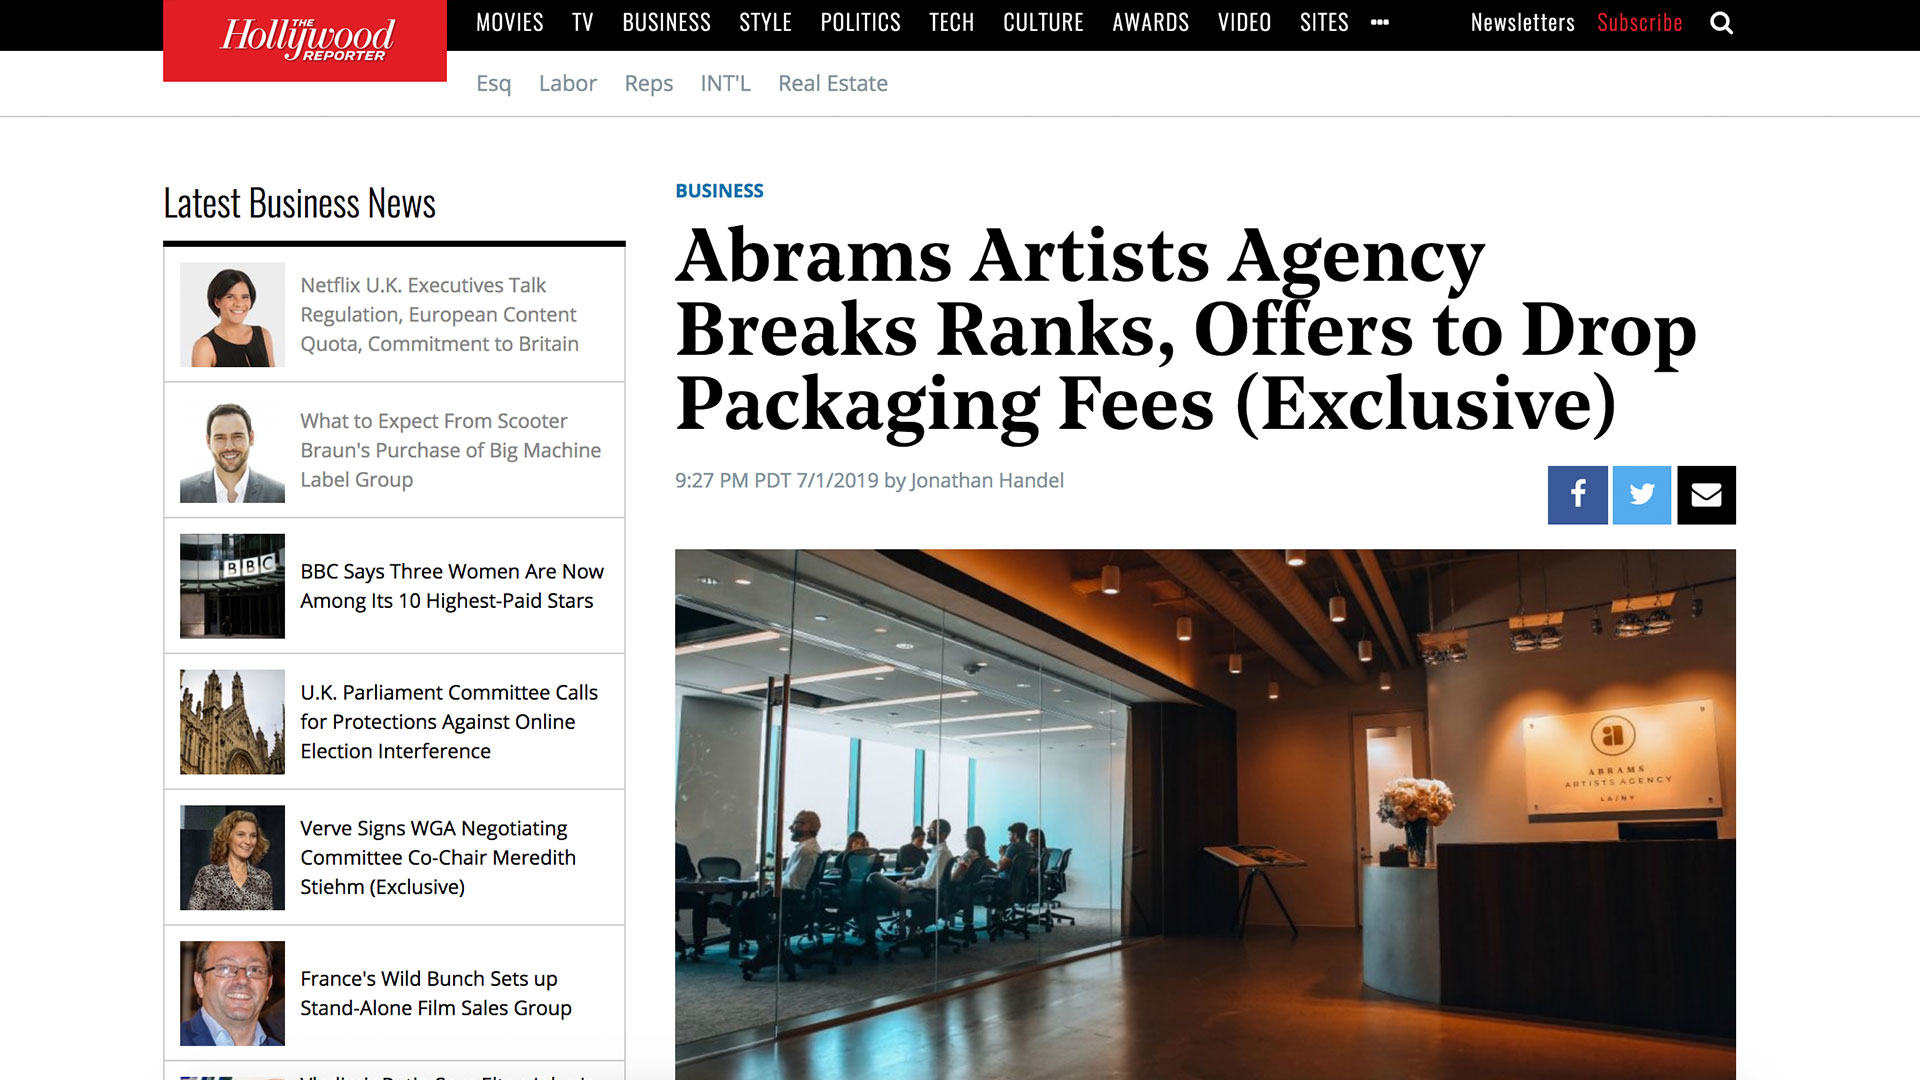 Fairness Rocks News Abrams Artists Agency Breaks Ranks, Offers to Drop Packaging Fees (Exclusive)